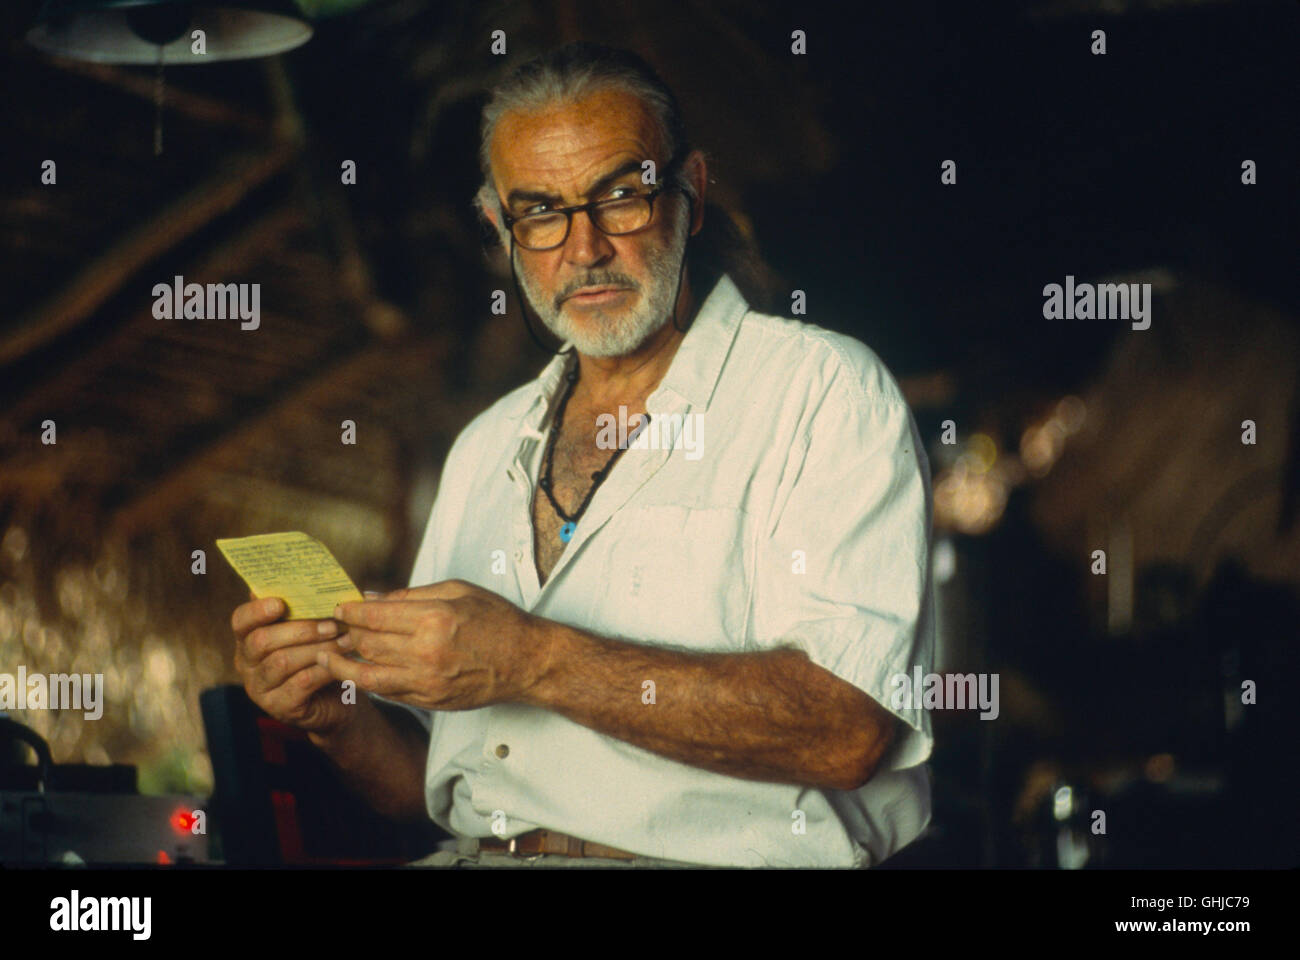 SEAN CONNERY (Dr. Robert Campbell) working on a research project in the Amazon jungle. Regie: John McTiernan aka. - Stock Image